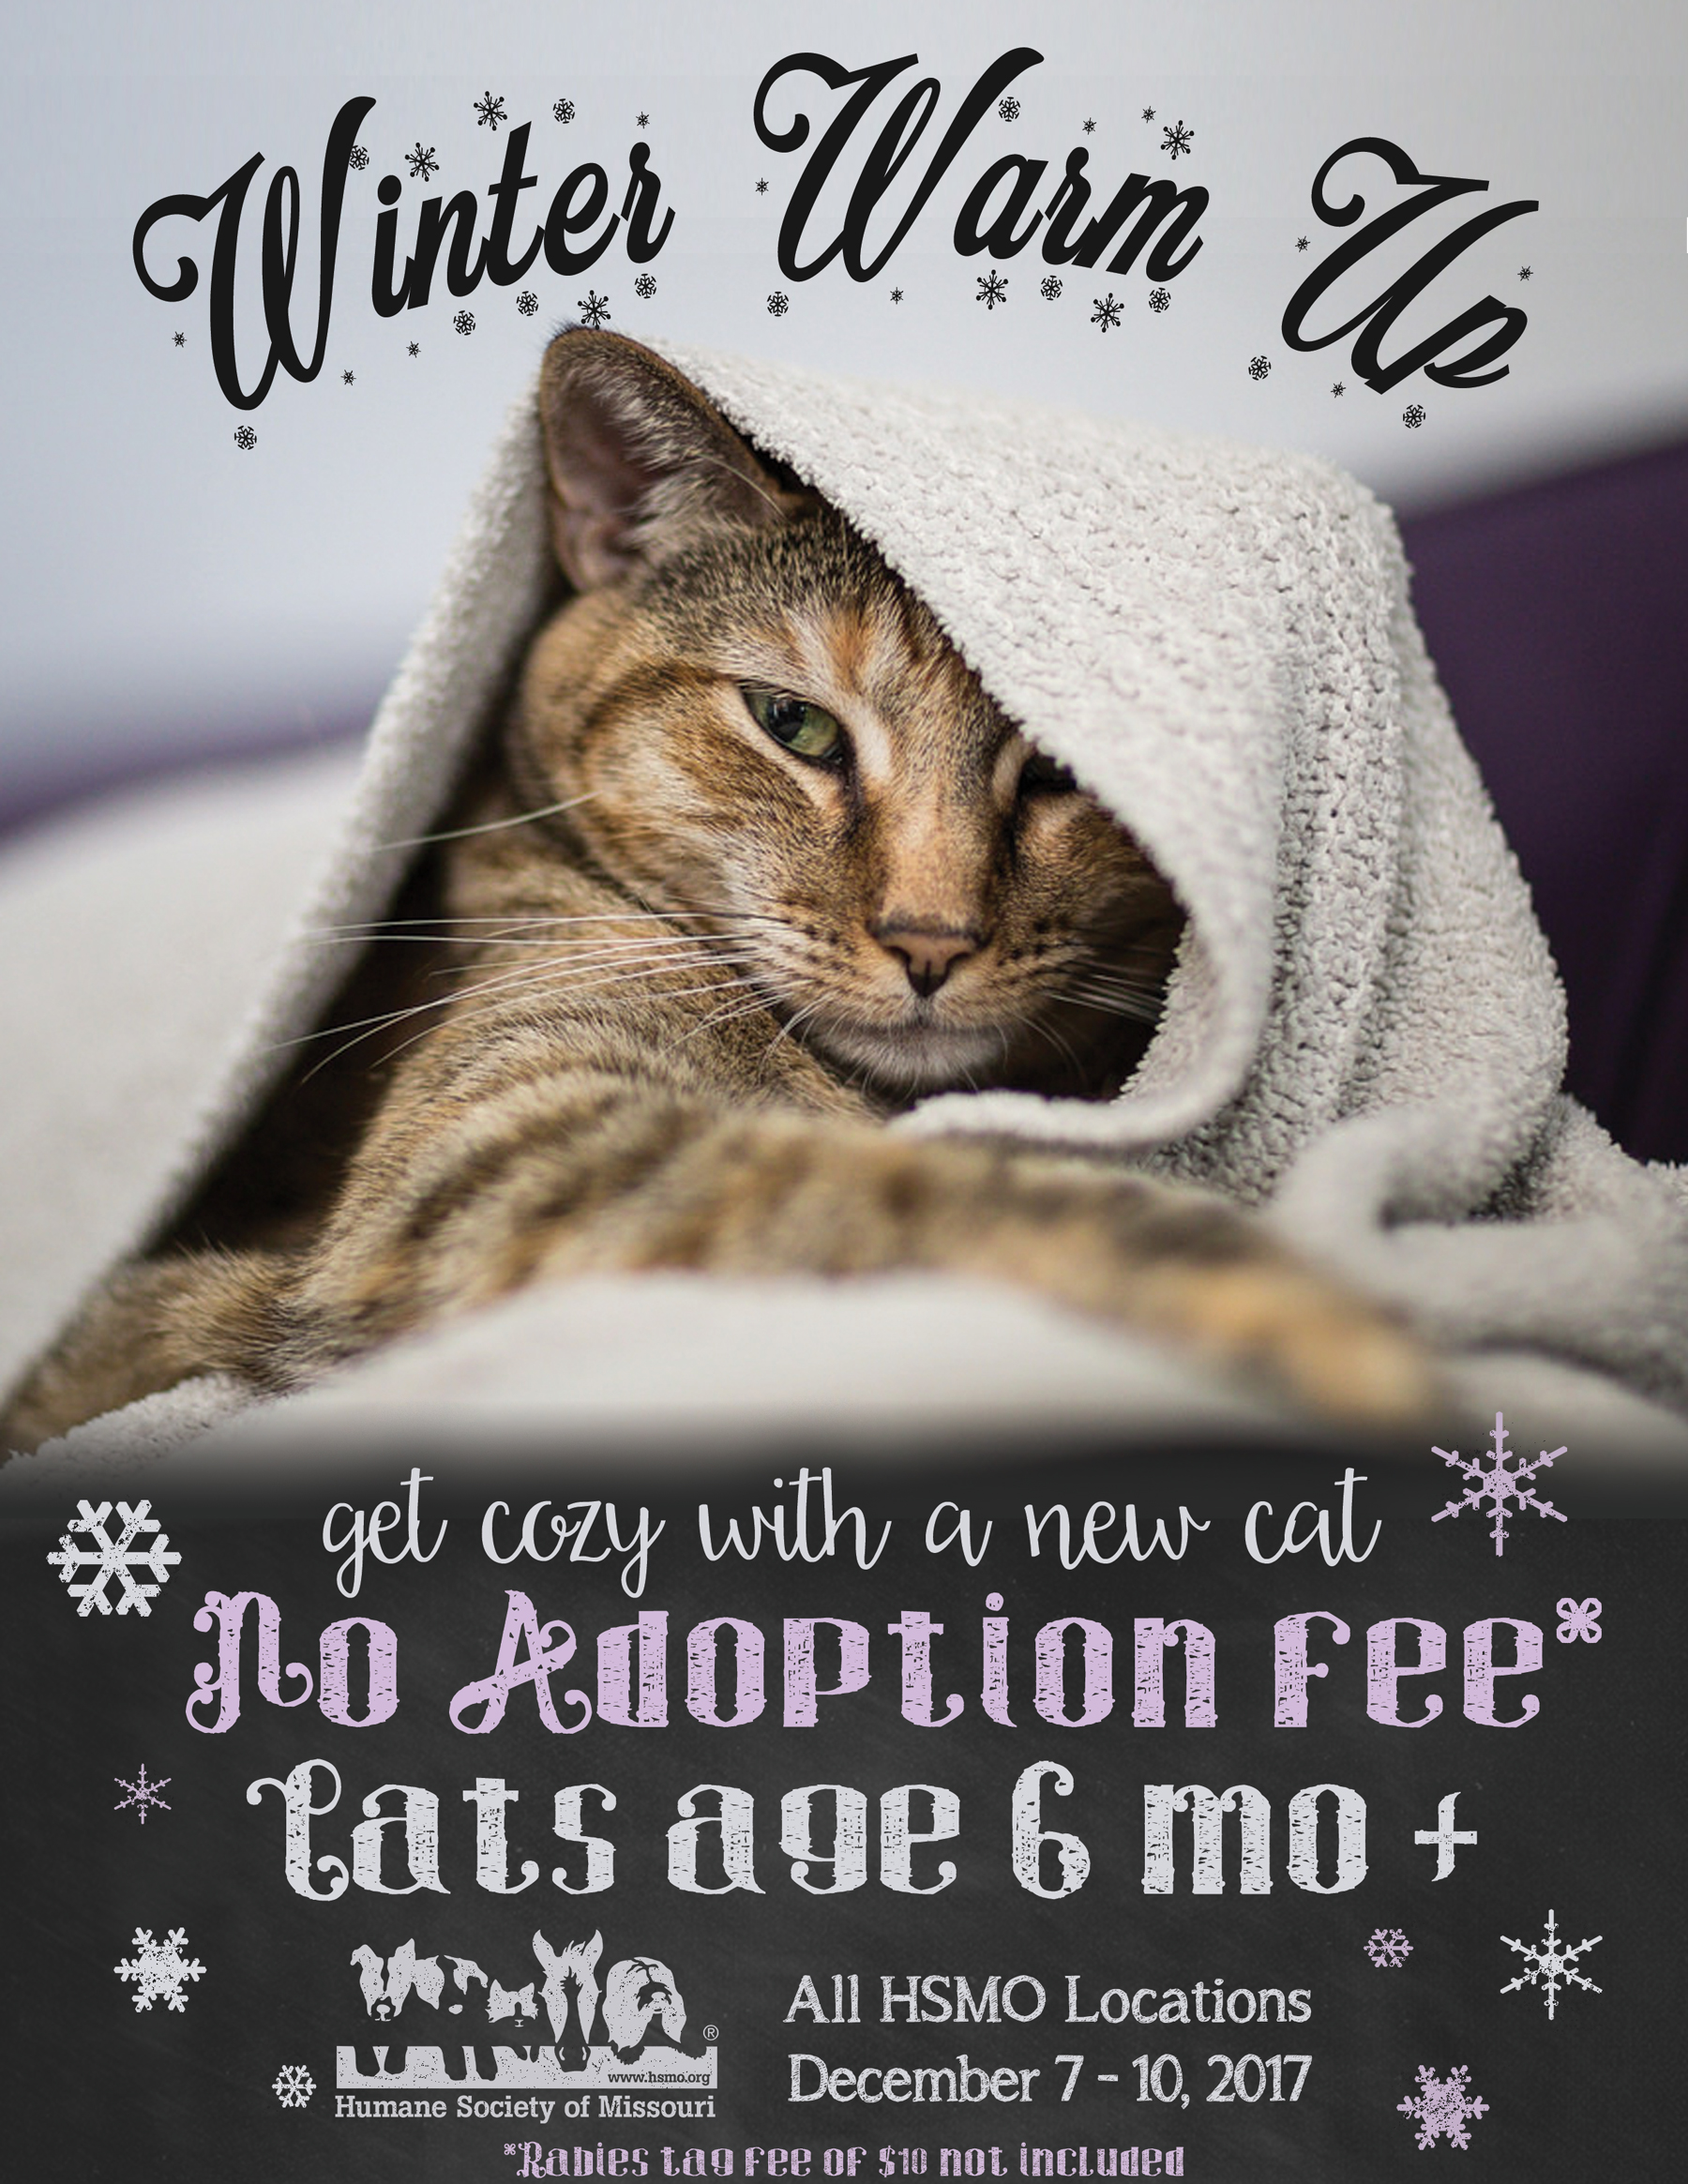 HSMO Winter Warm Up no fee cat adoption special in St Louis